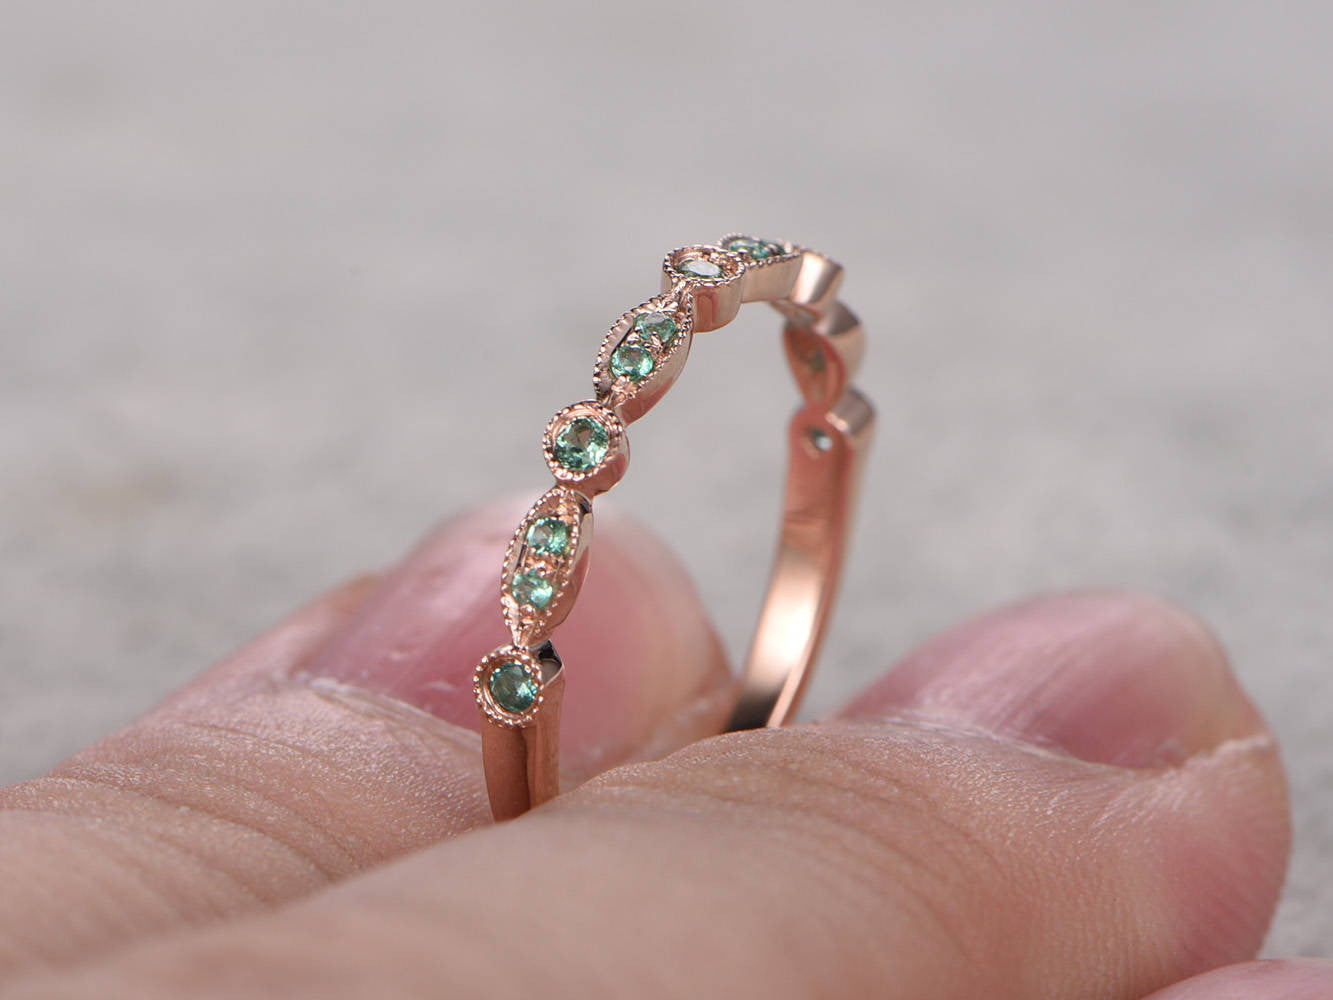 Natural Emerald,Half Eternity Wedding Ring,14K Rose gold,Anniversary Ring,Art deco Marquise style,stacking,milgrain,Emerald wedding band